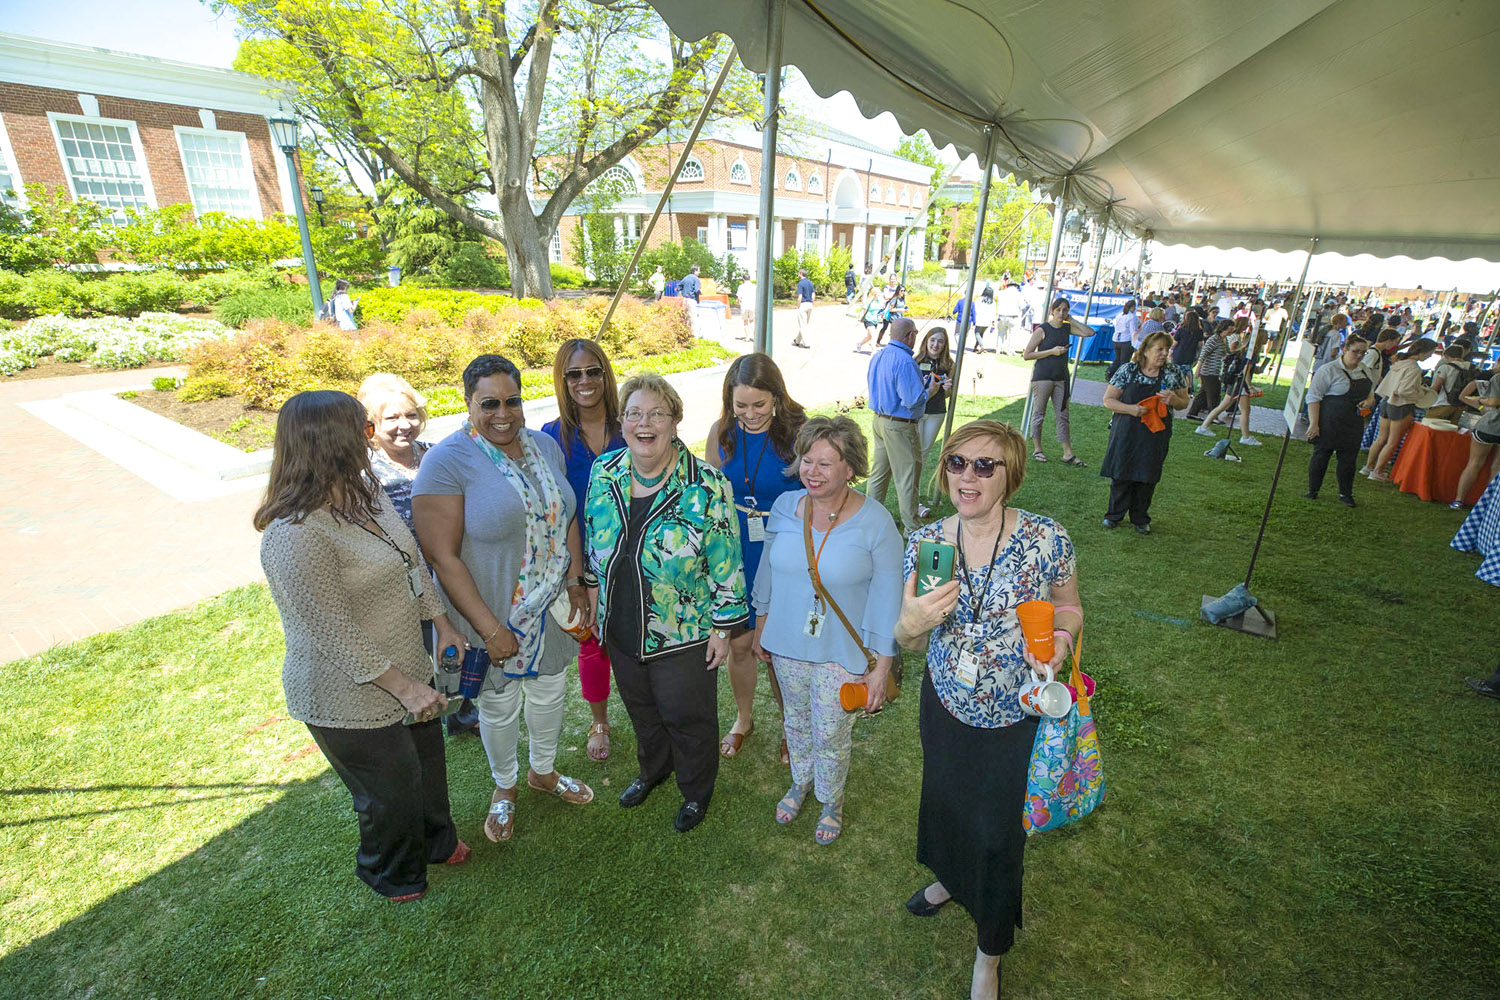 University President Teresa A. Sullivan surrounded by well-wishers at the picnic in her honor.